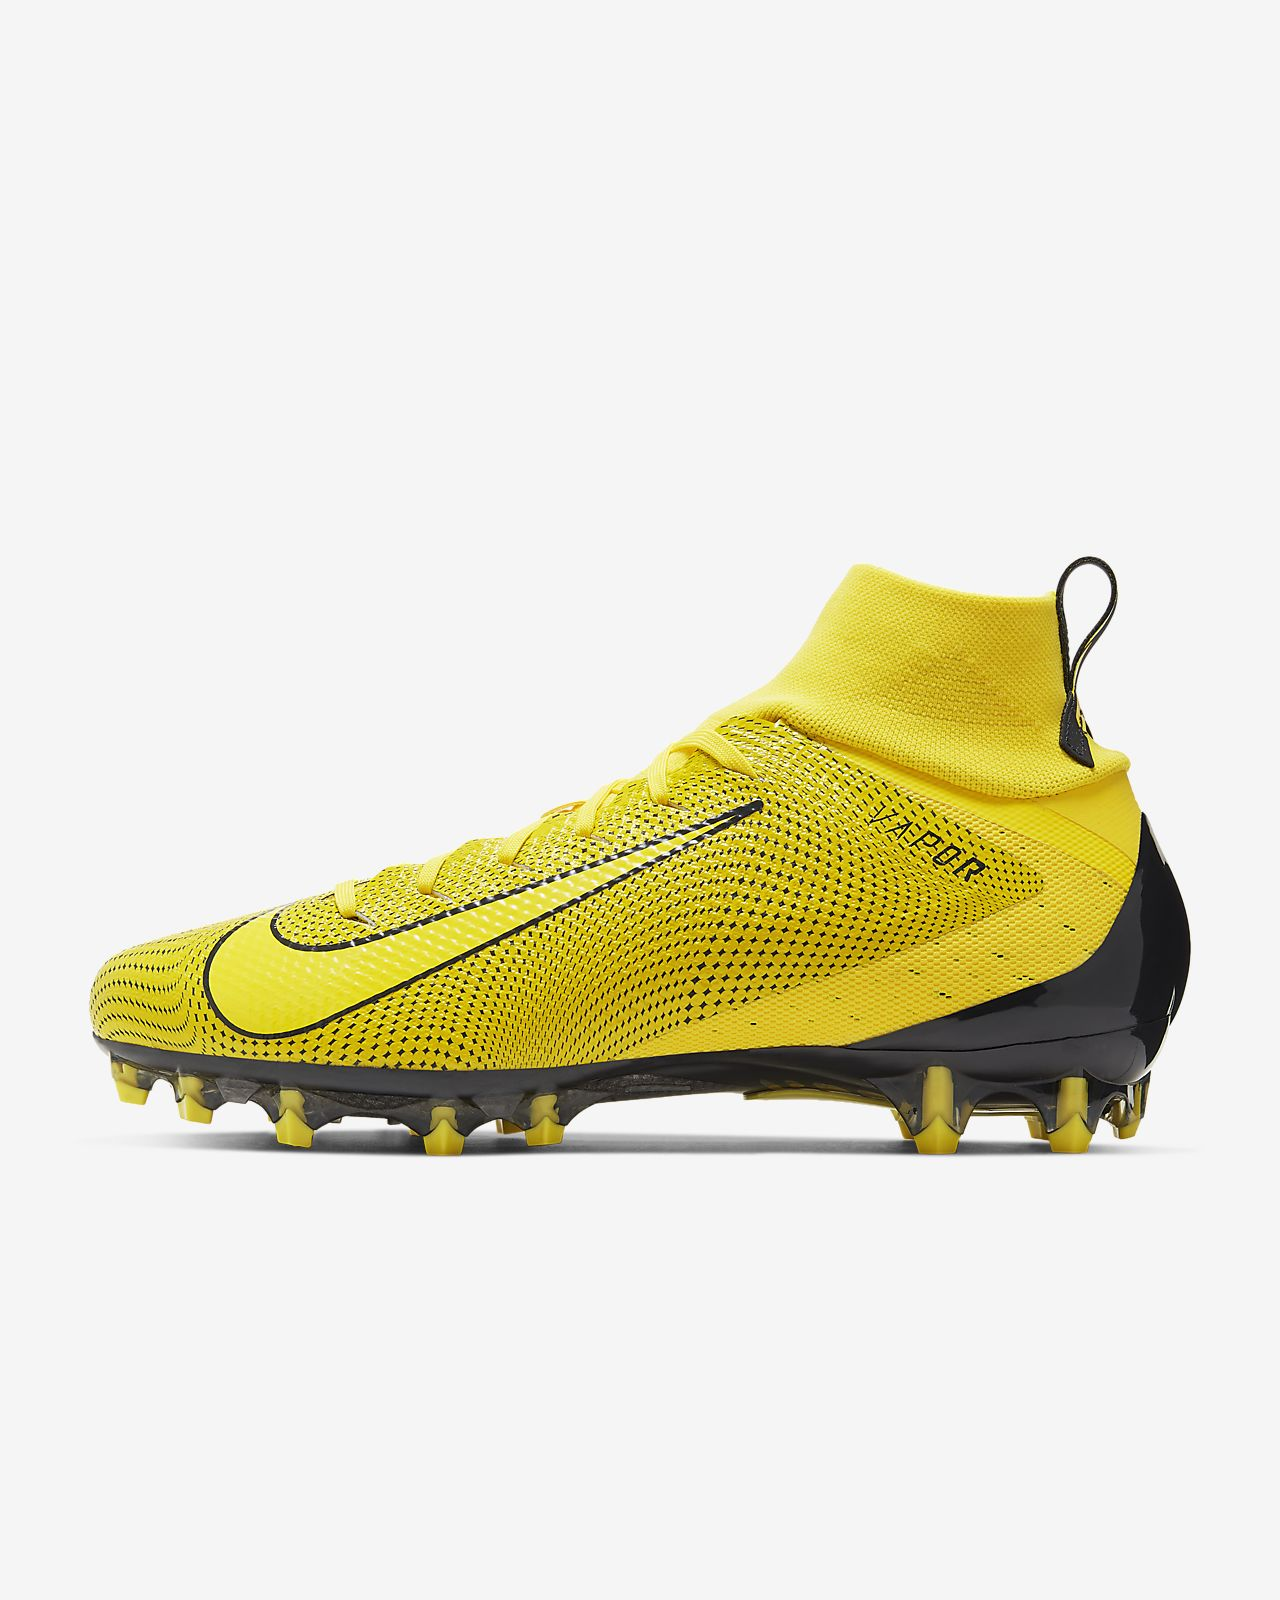 954a6a3e3ae Nike Vapor Untouchable 3 Pro Football Cleat. Nike.com